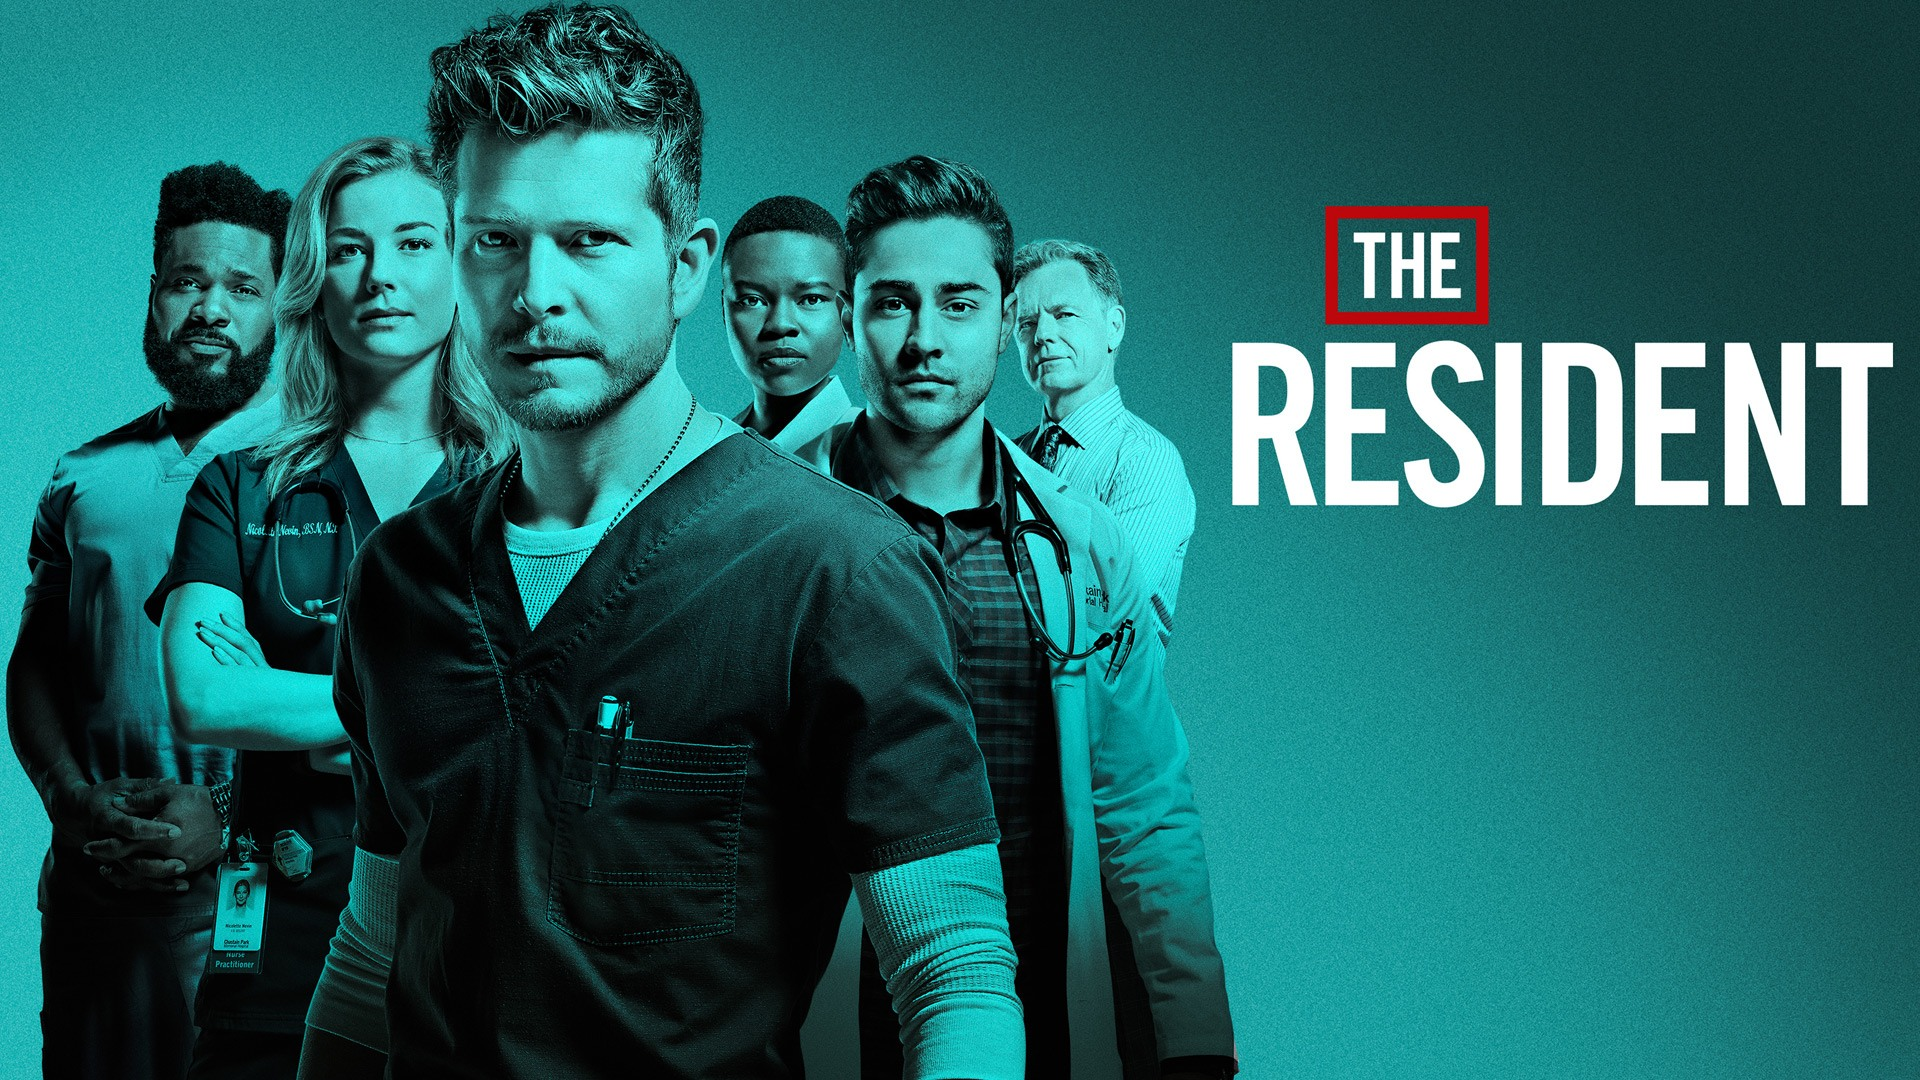 The Resident renewed with fourth season